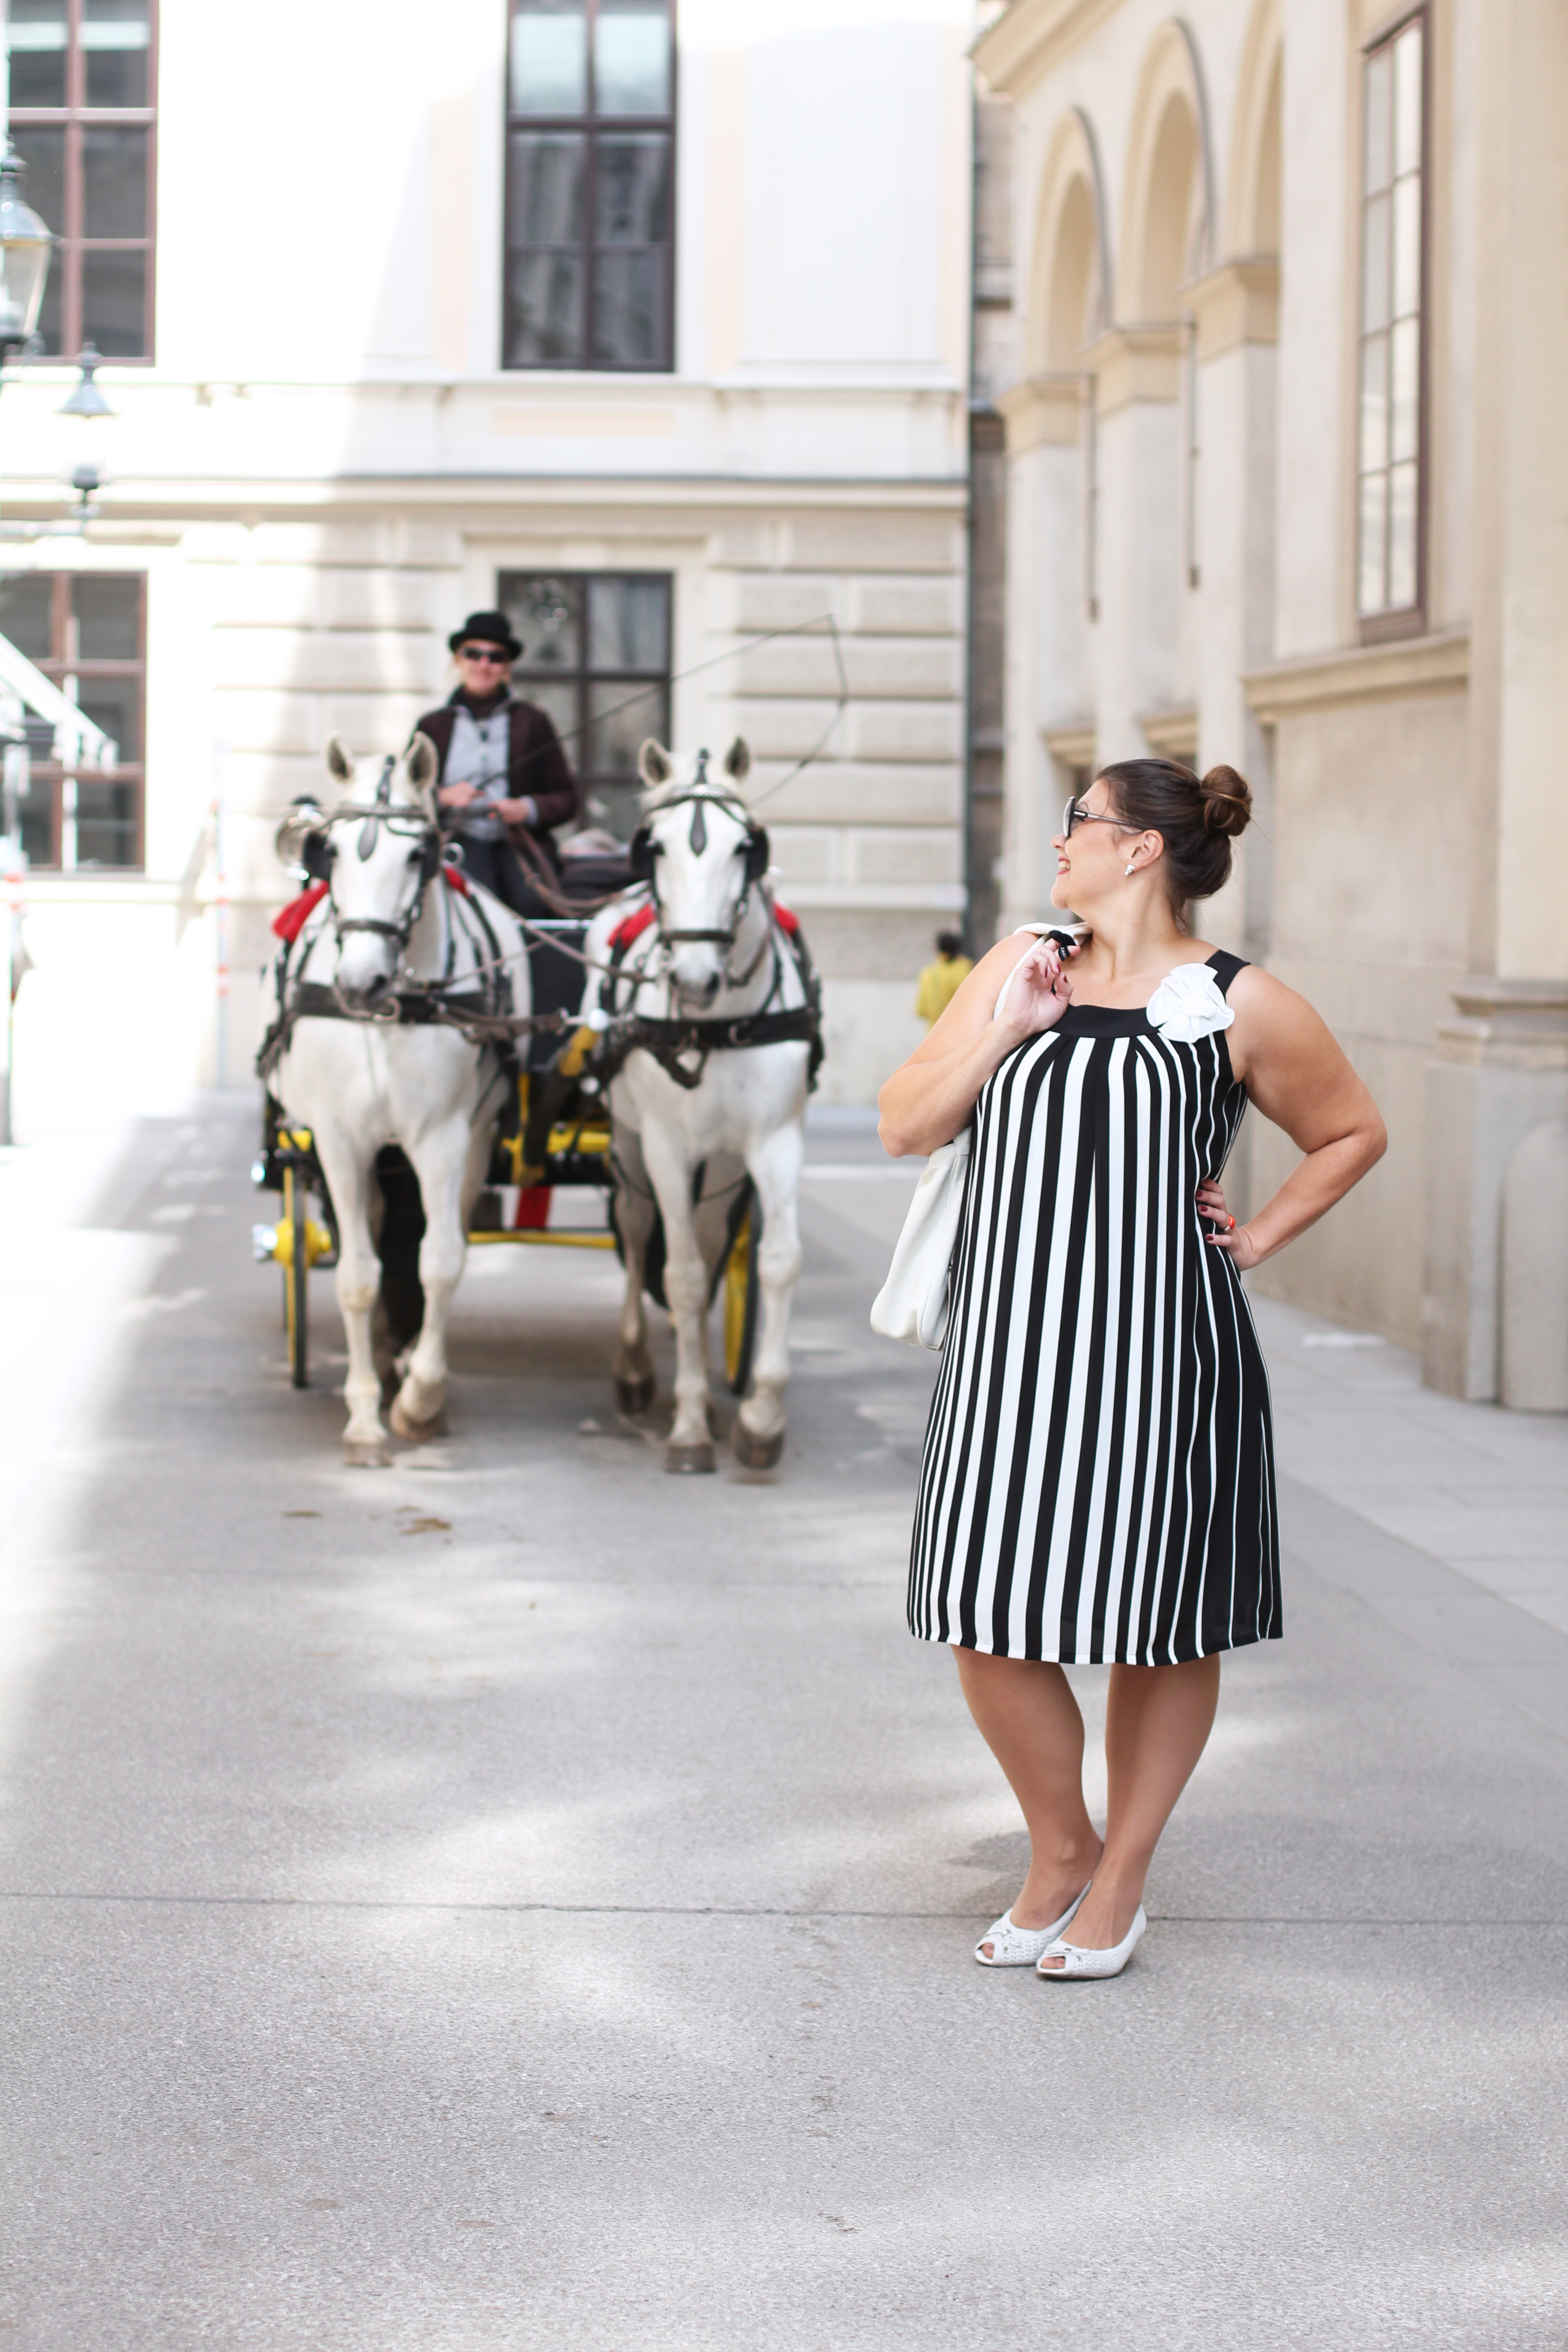 stripes streifen dress kleid fashion challenge whoismocca kardiaserena furla white black audrey hepburn style wien vienna